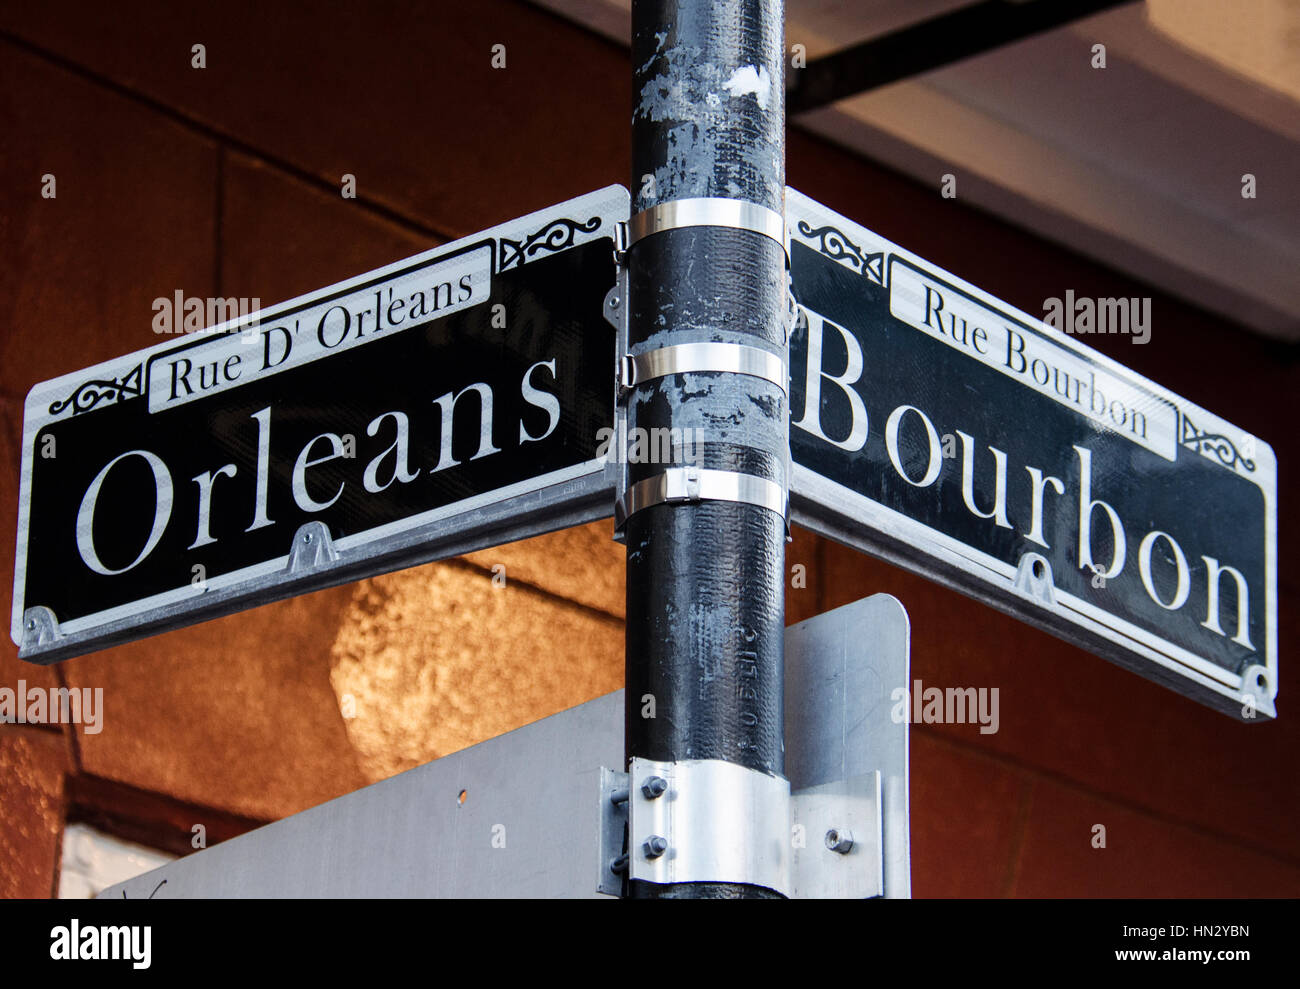 Street Signs For Rue D Orleans And Rue Bourbon In New